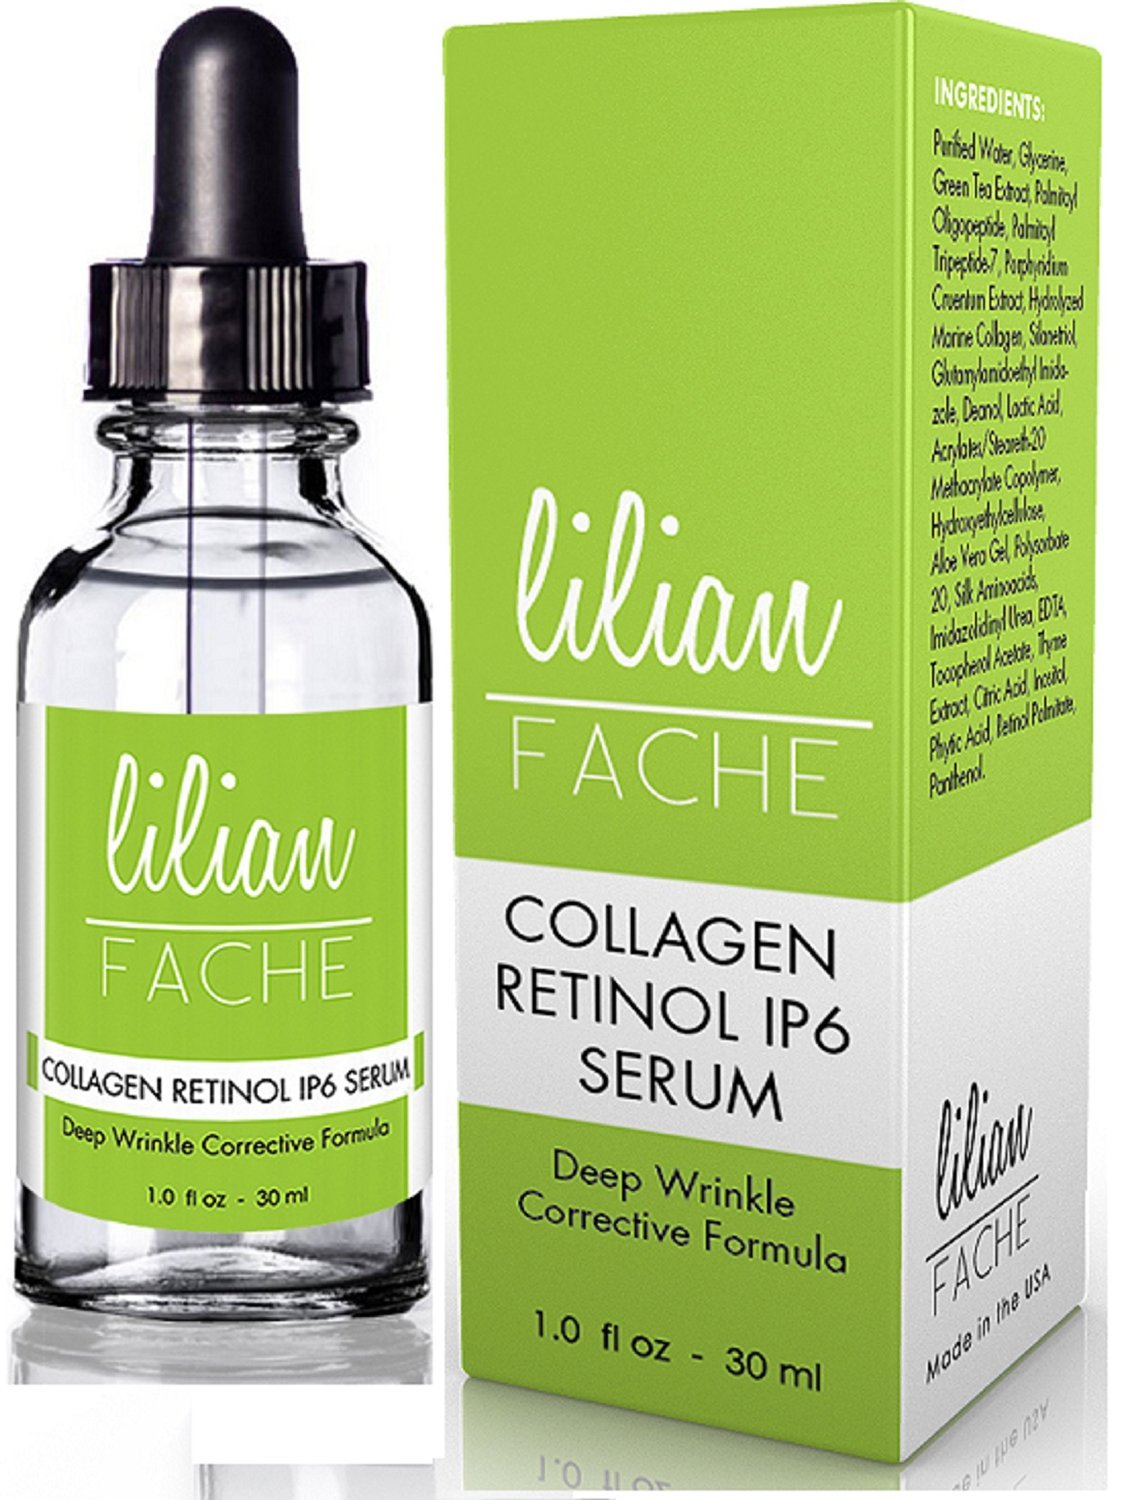 Fine Line and Wrinkle Repair Correction Collagen Retinol IP-6 Serum From Lilian Fache, Clinical Strength Anti Aging Serum - The Best Anti Wrinkle Serum - 30ml